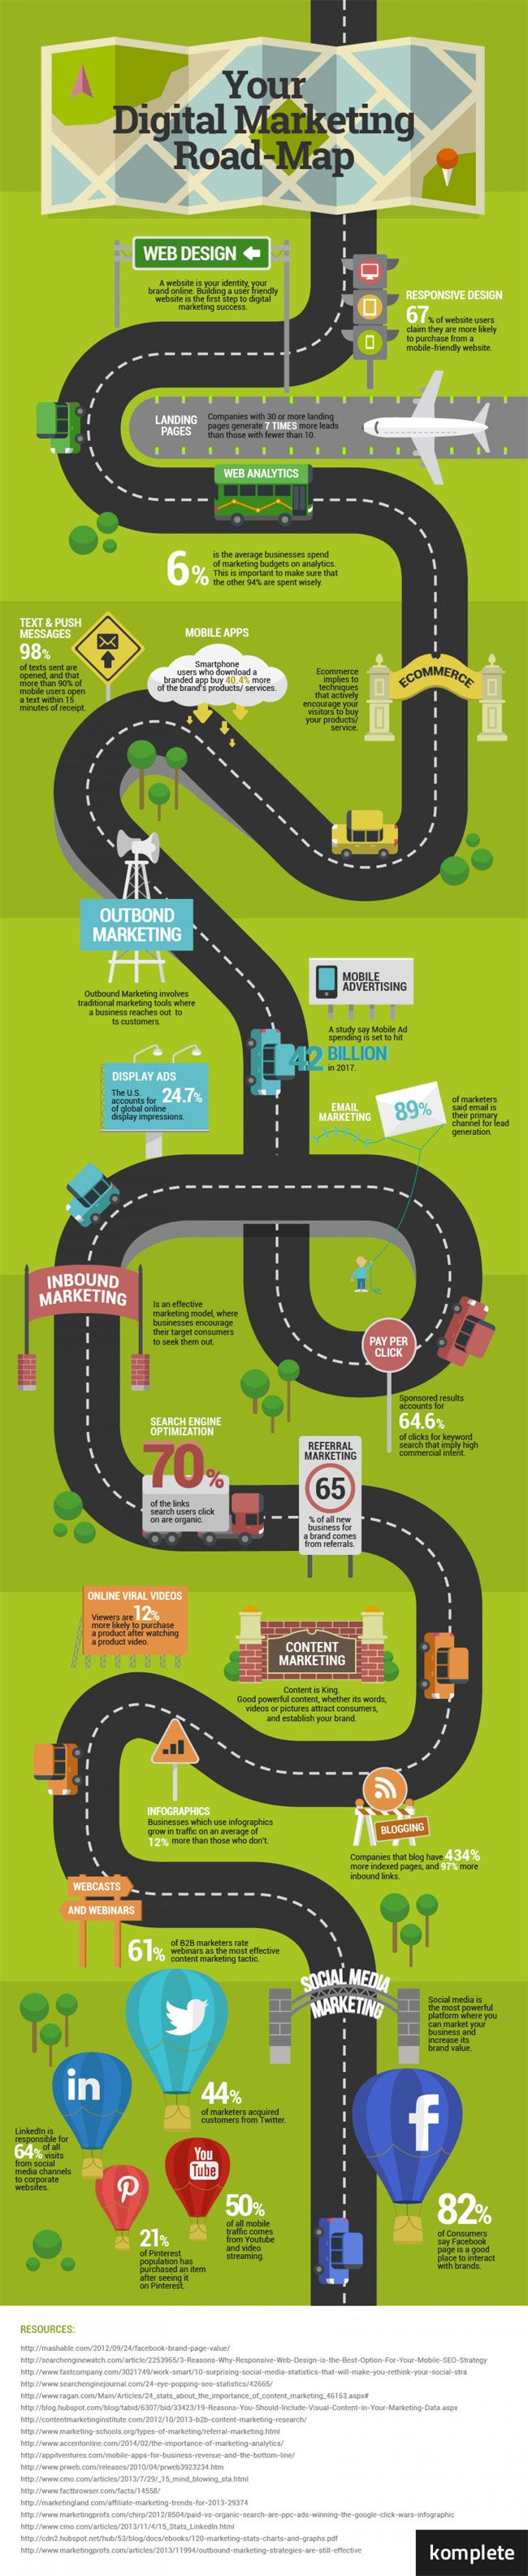 digital marketing road map.